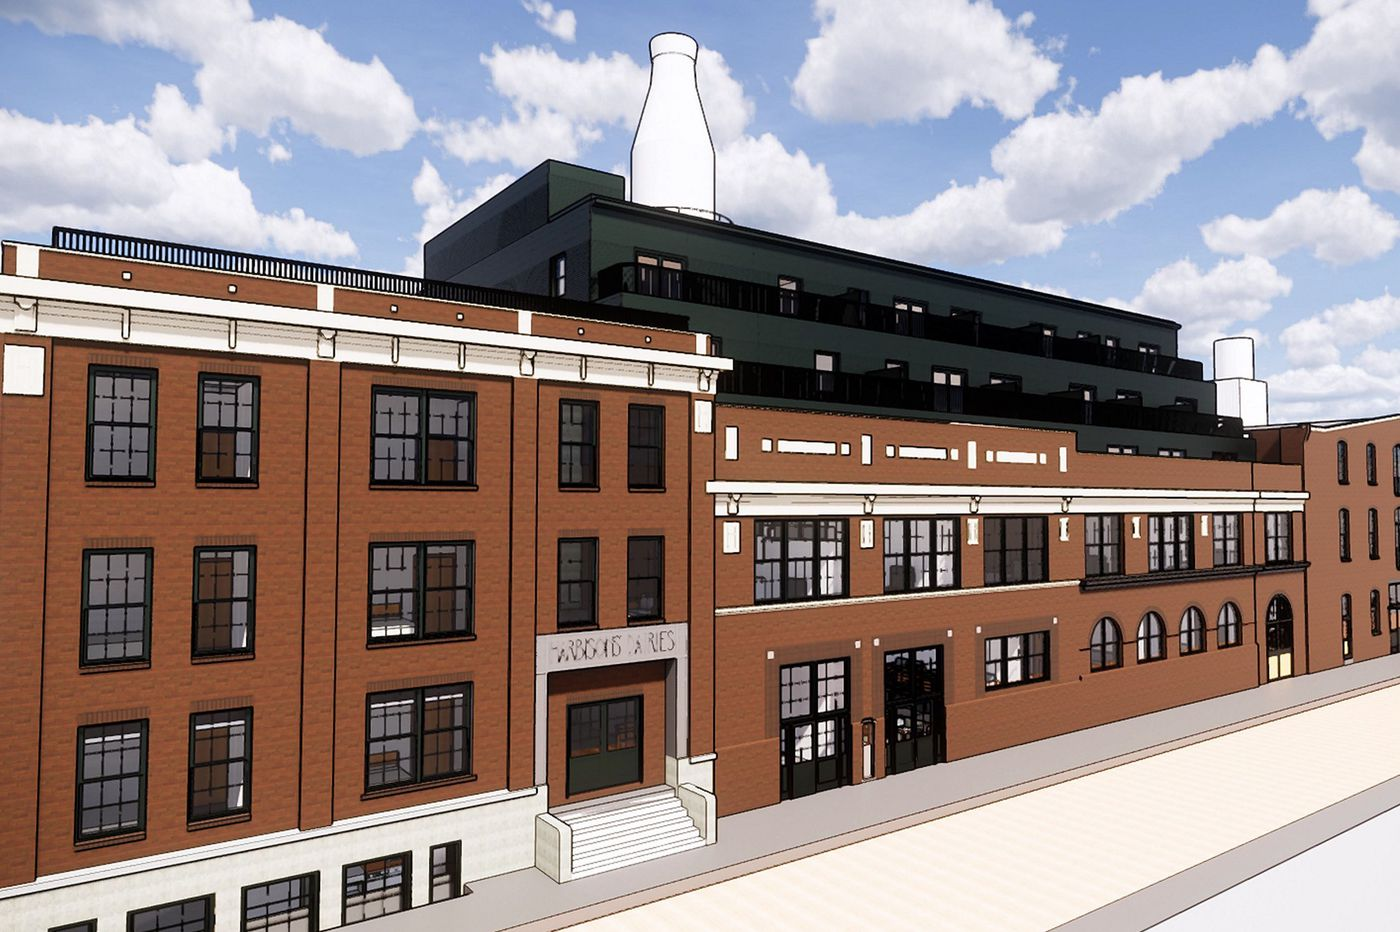 Philly-based maker of promo goods to occupy office space in Kensington's milk-bottle building